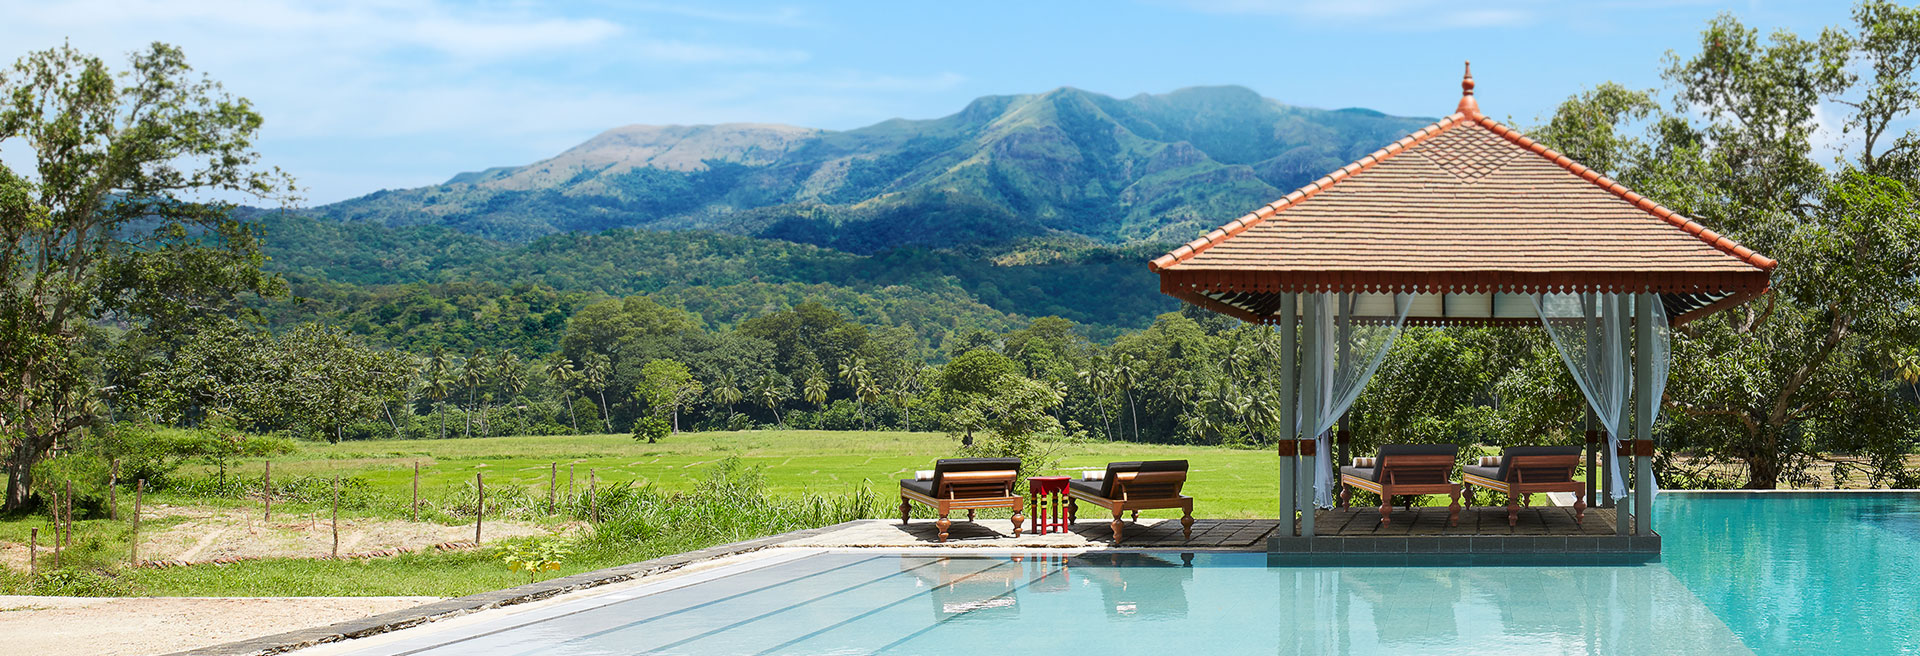 Pool With Scenic Mountain View